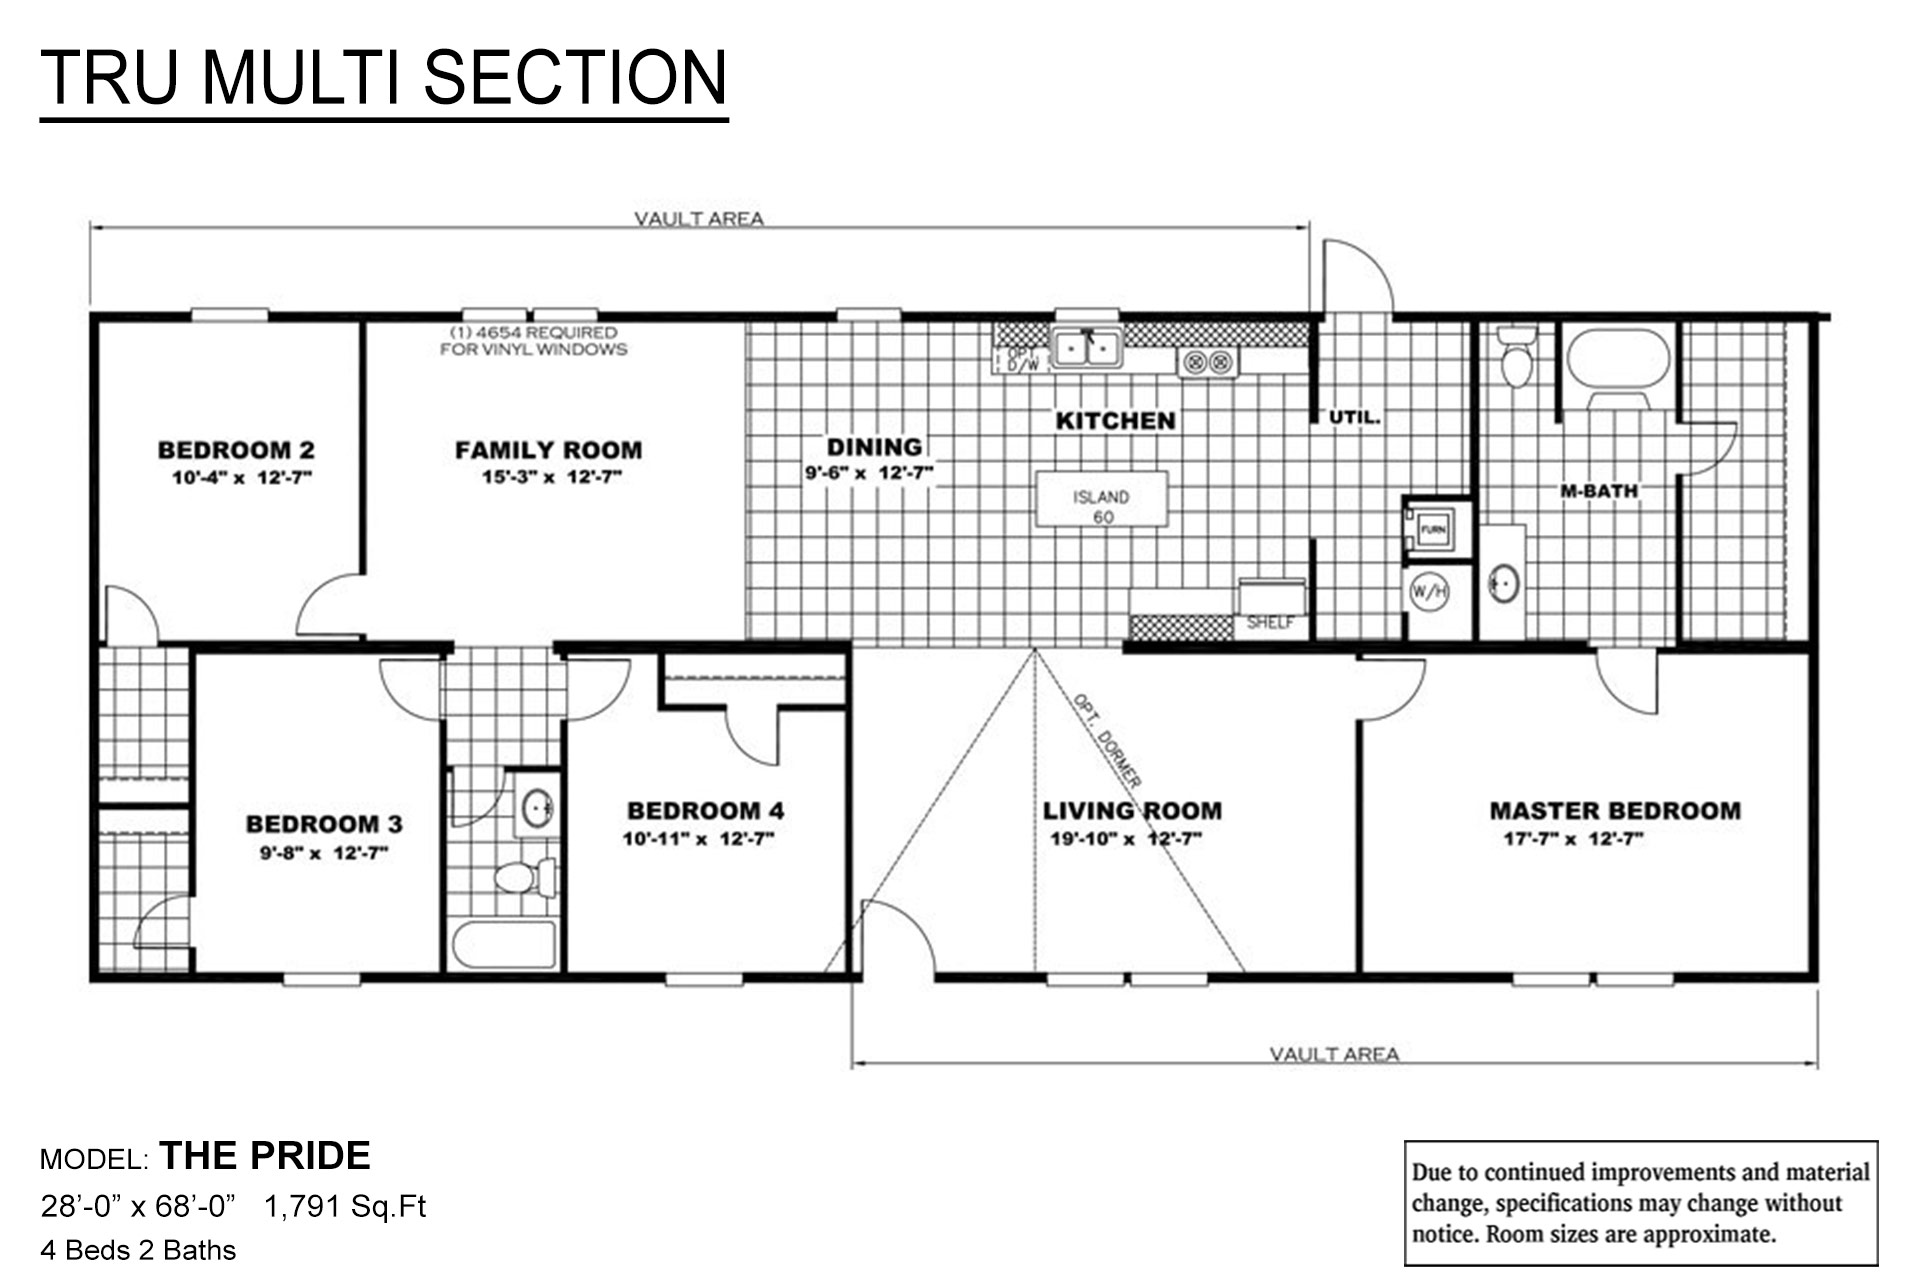 TRU Multi Section Pride Layout